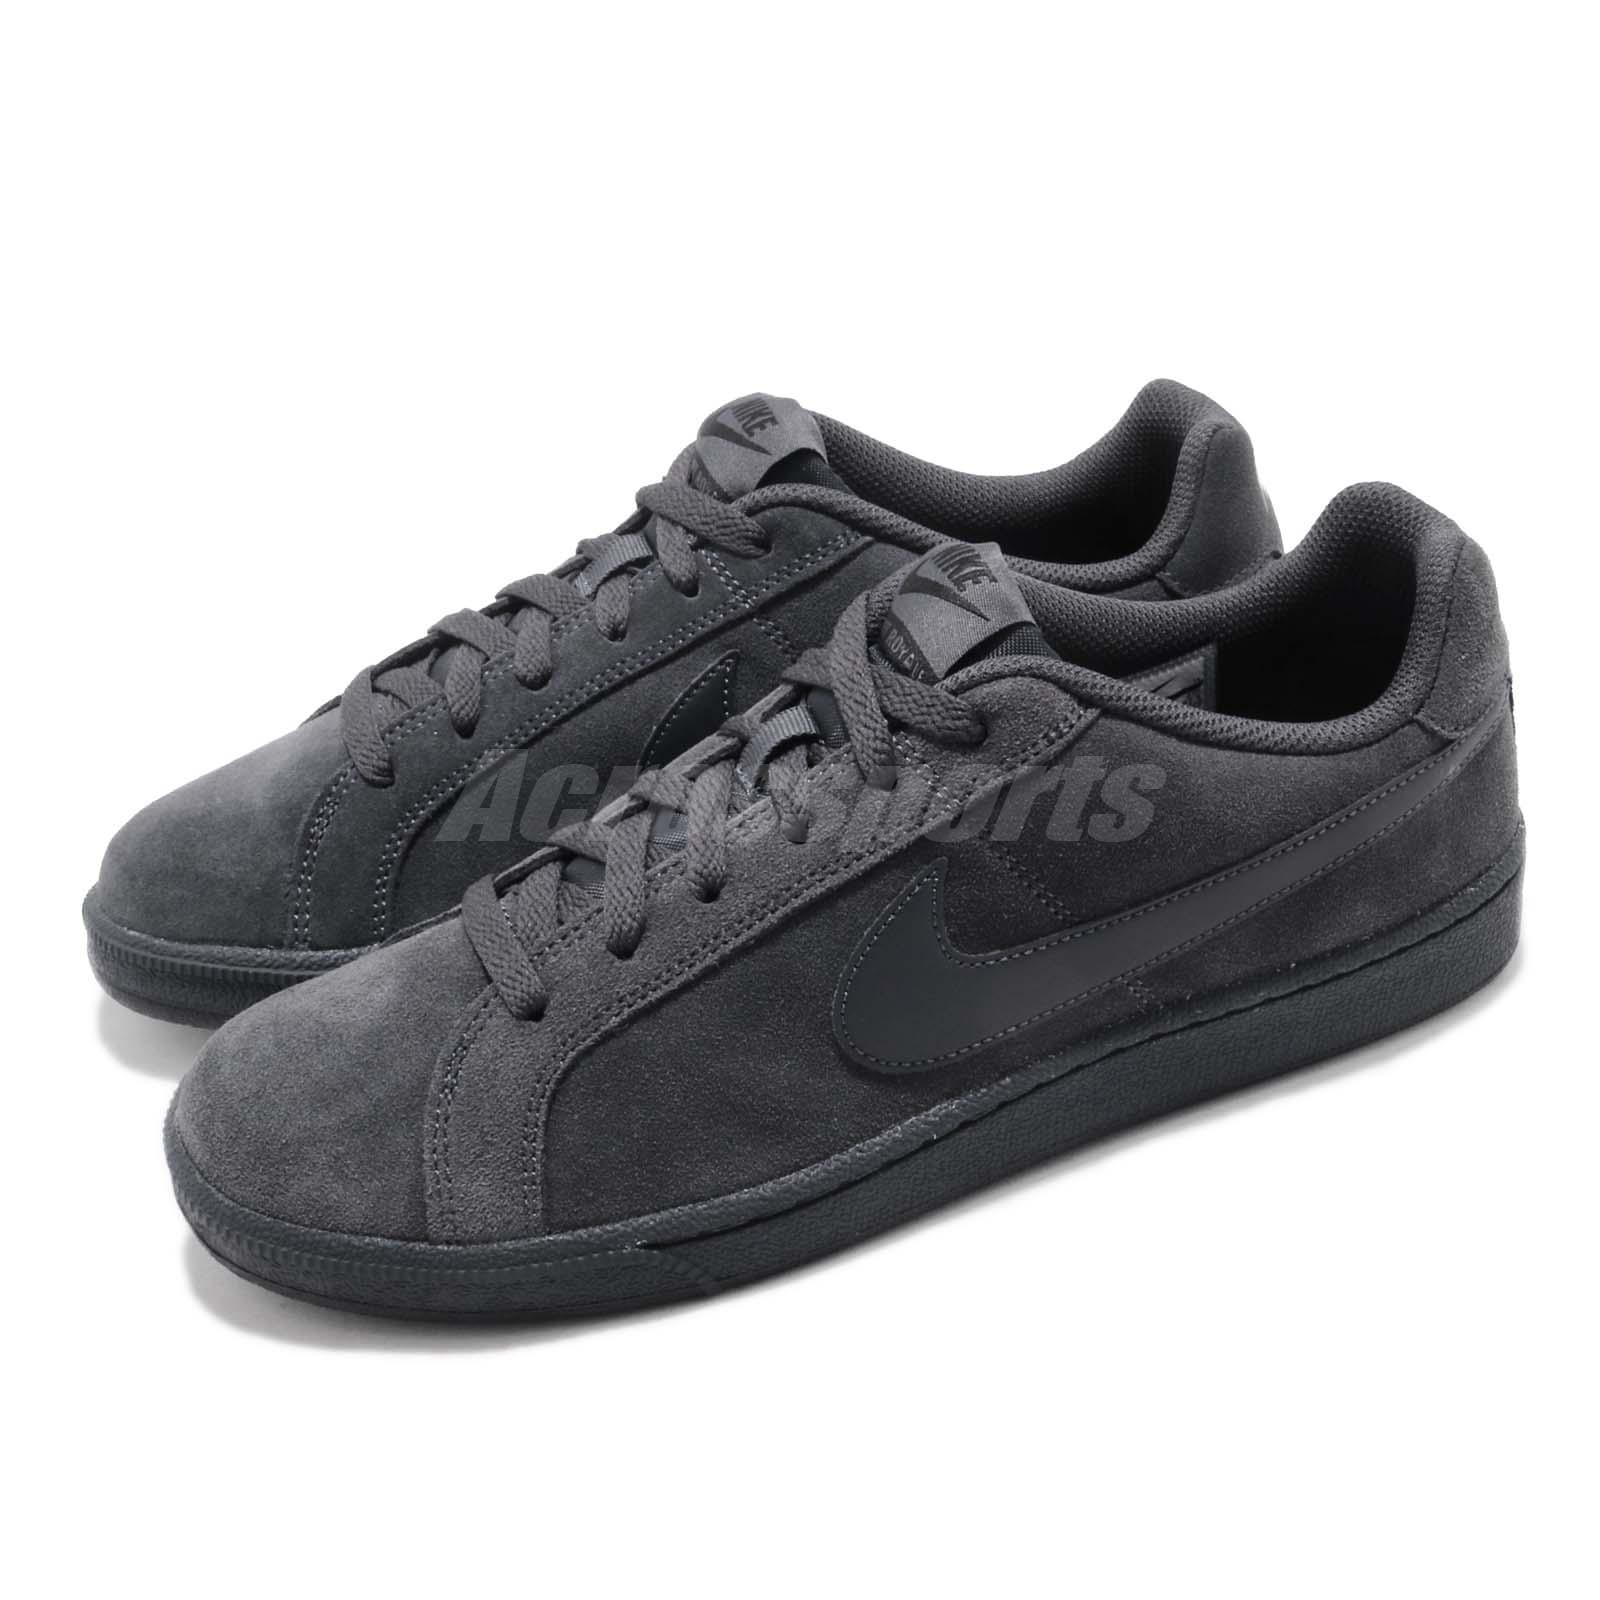 f8eea8d3503 Details about Nike Court Royale Suede Anthracite Black Men Casual Shoes  Sneakers 819802-012